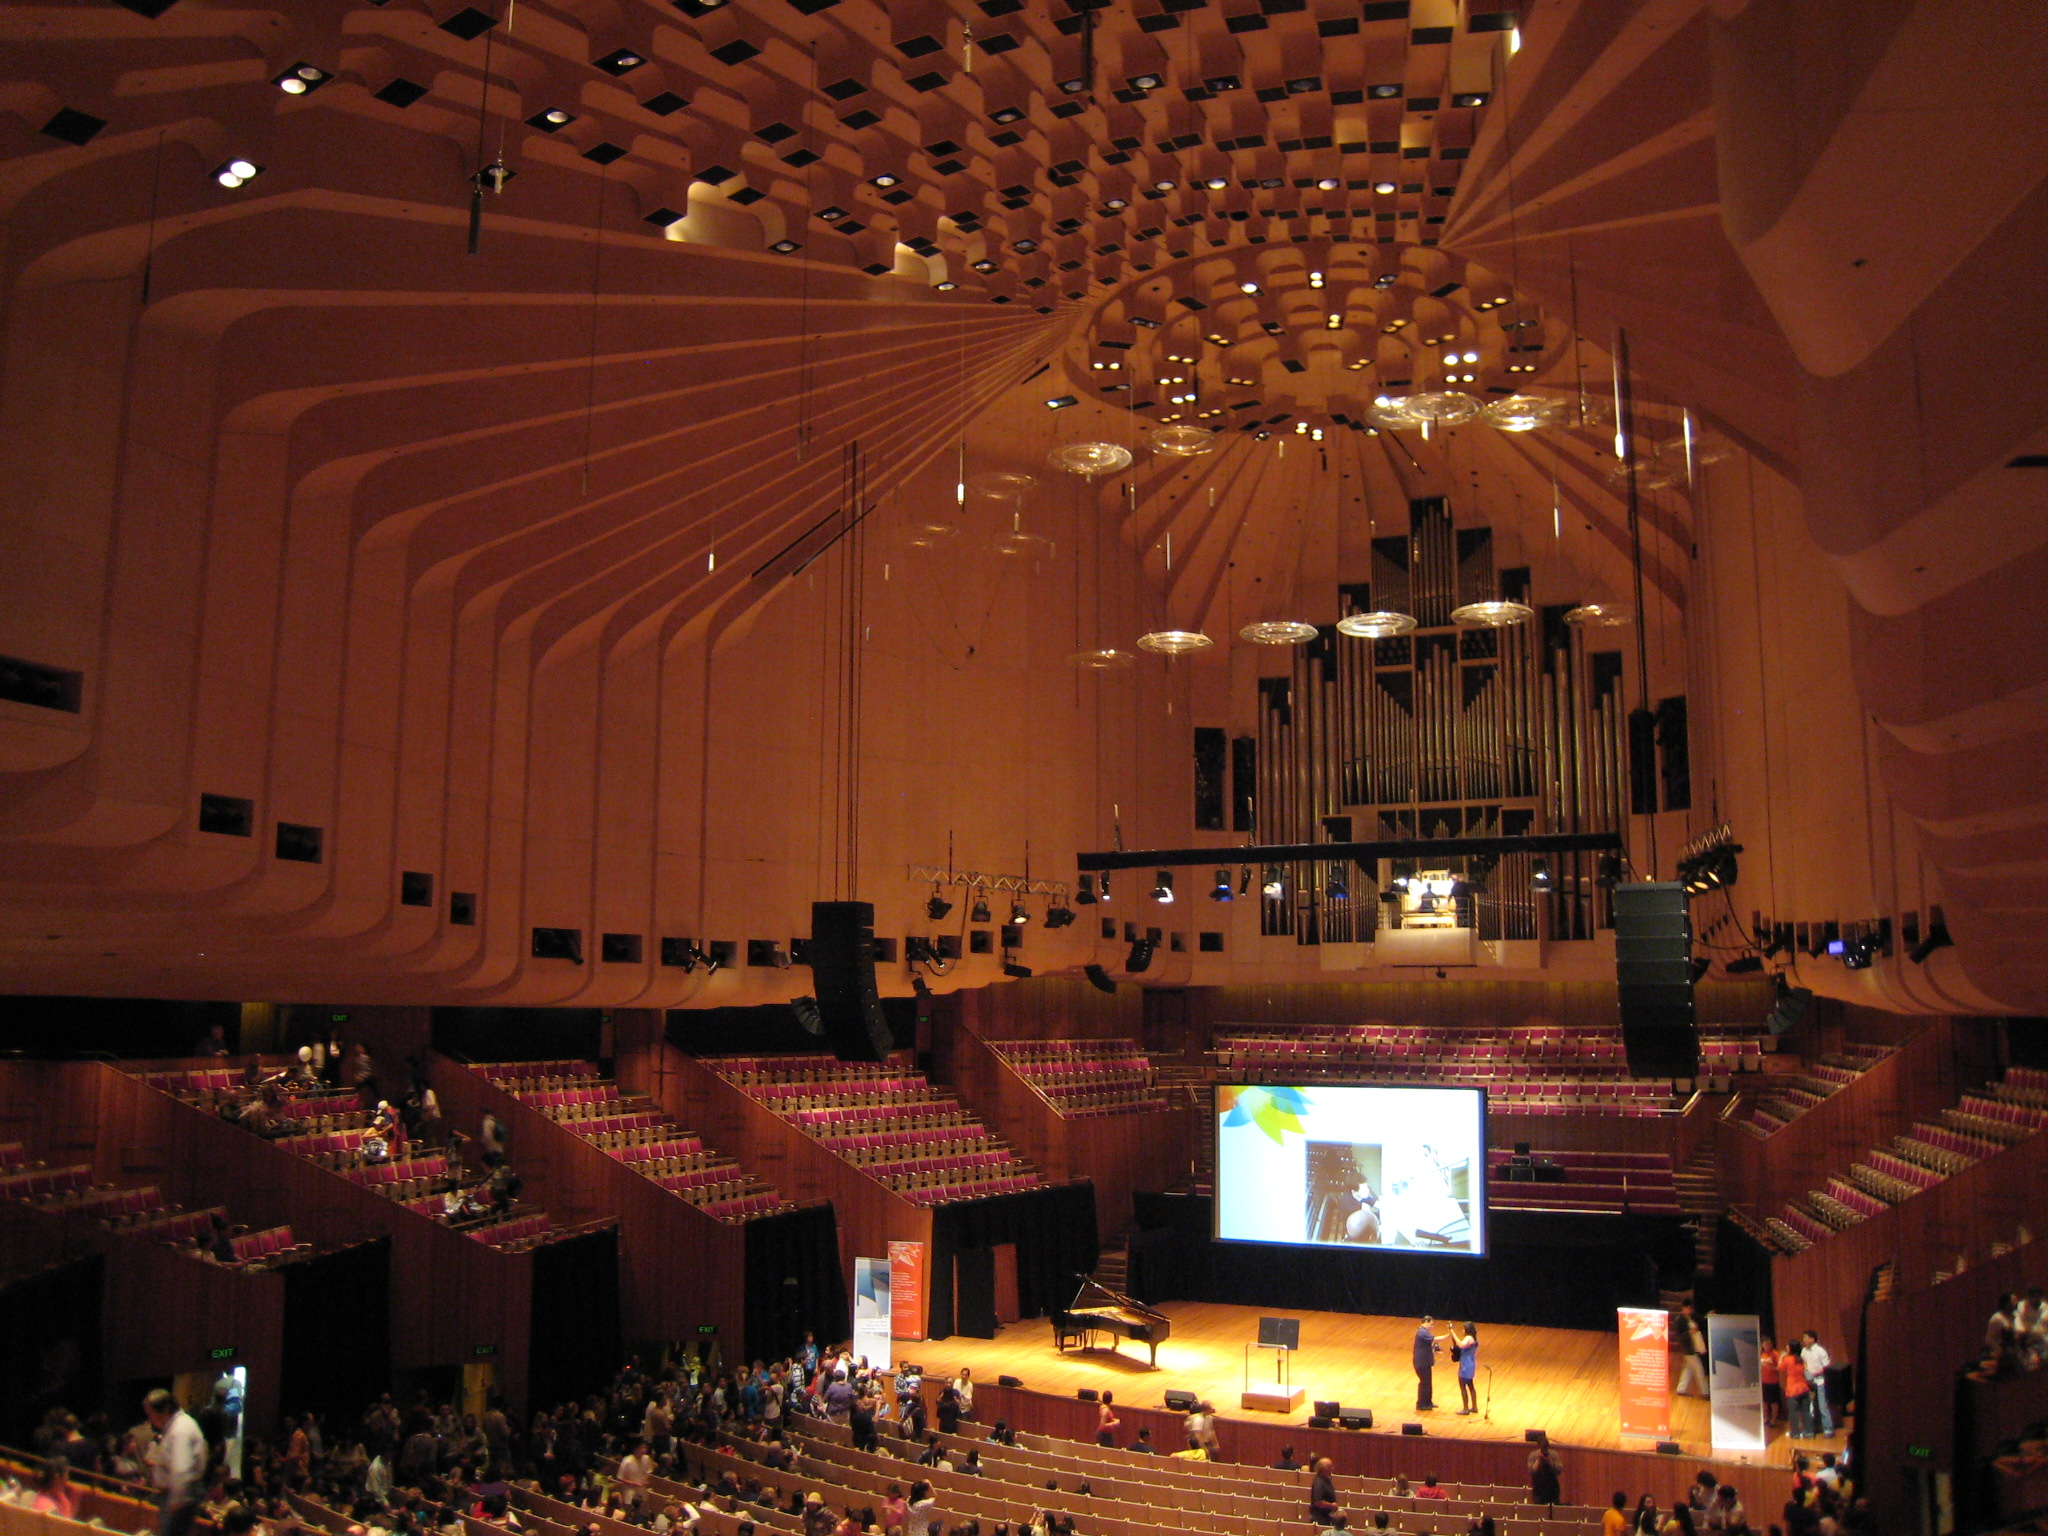 Playhouse Seating Plan Sydney Opera House Plans Diy How To